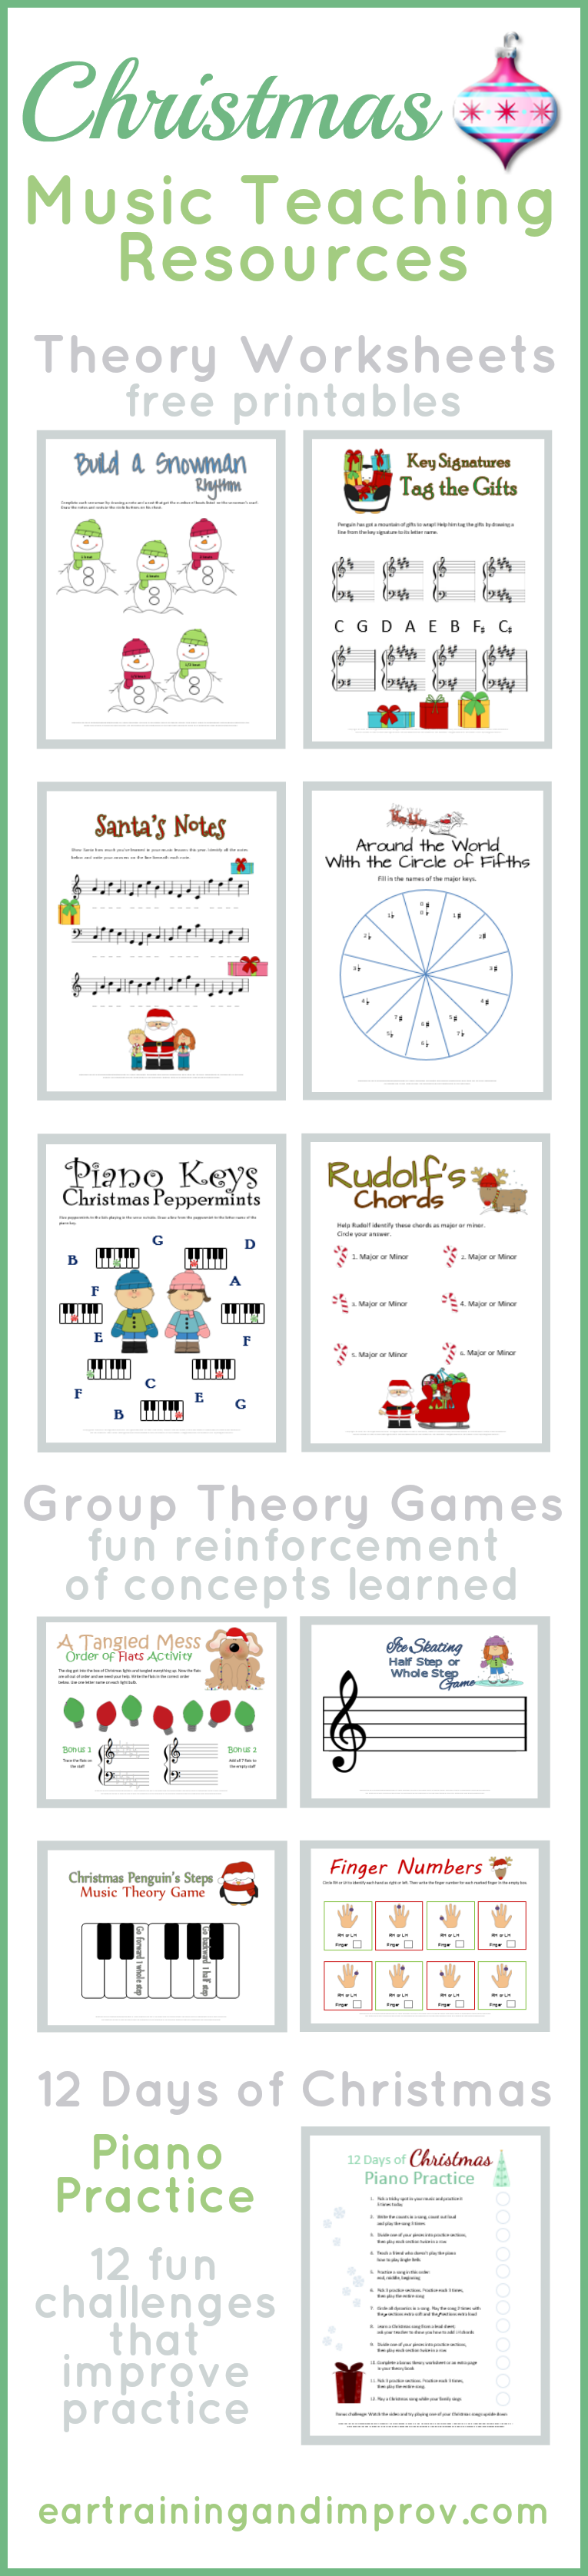 worksheet Theory Worksheets christmas music theory worksheets 20 free printables teaching resources group games 12